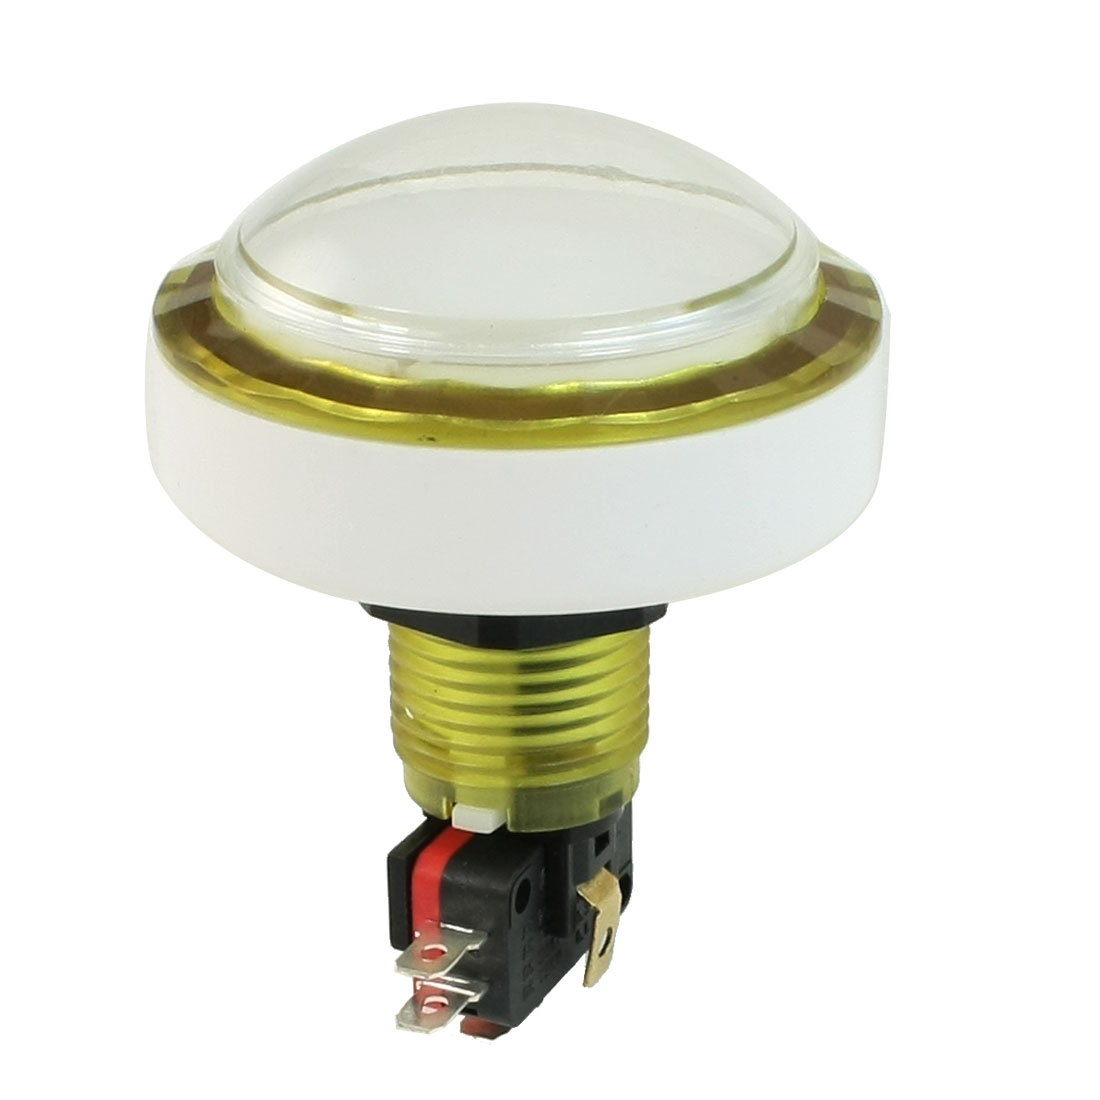 AC 125V 250V 15A Clear Cap White Light NC NO Momentary Push Button Switch